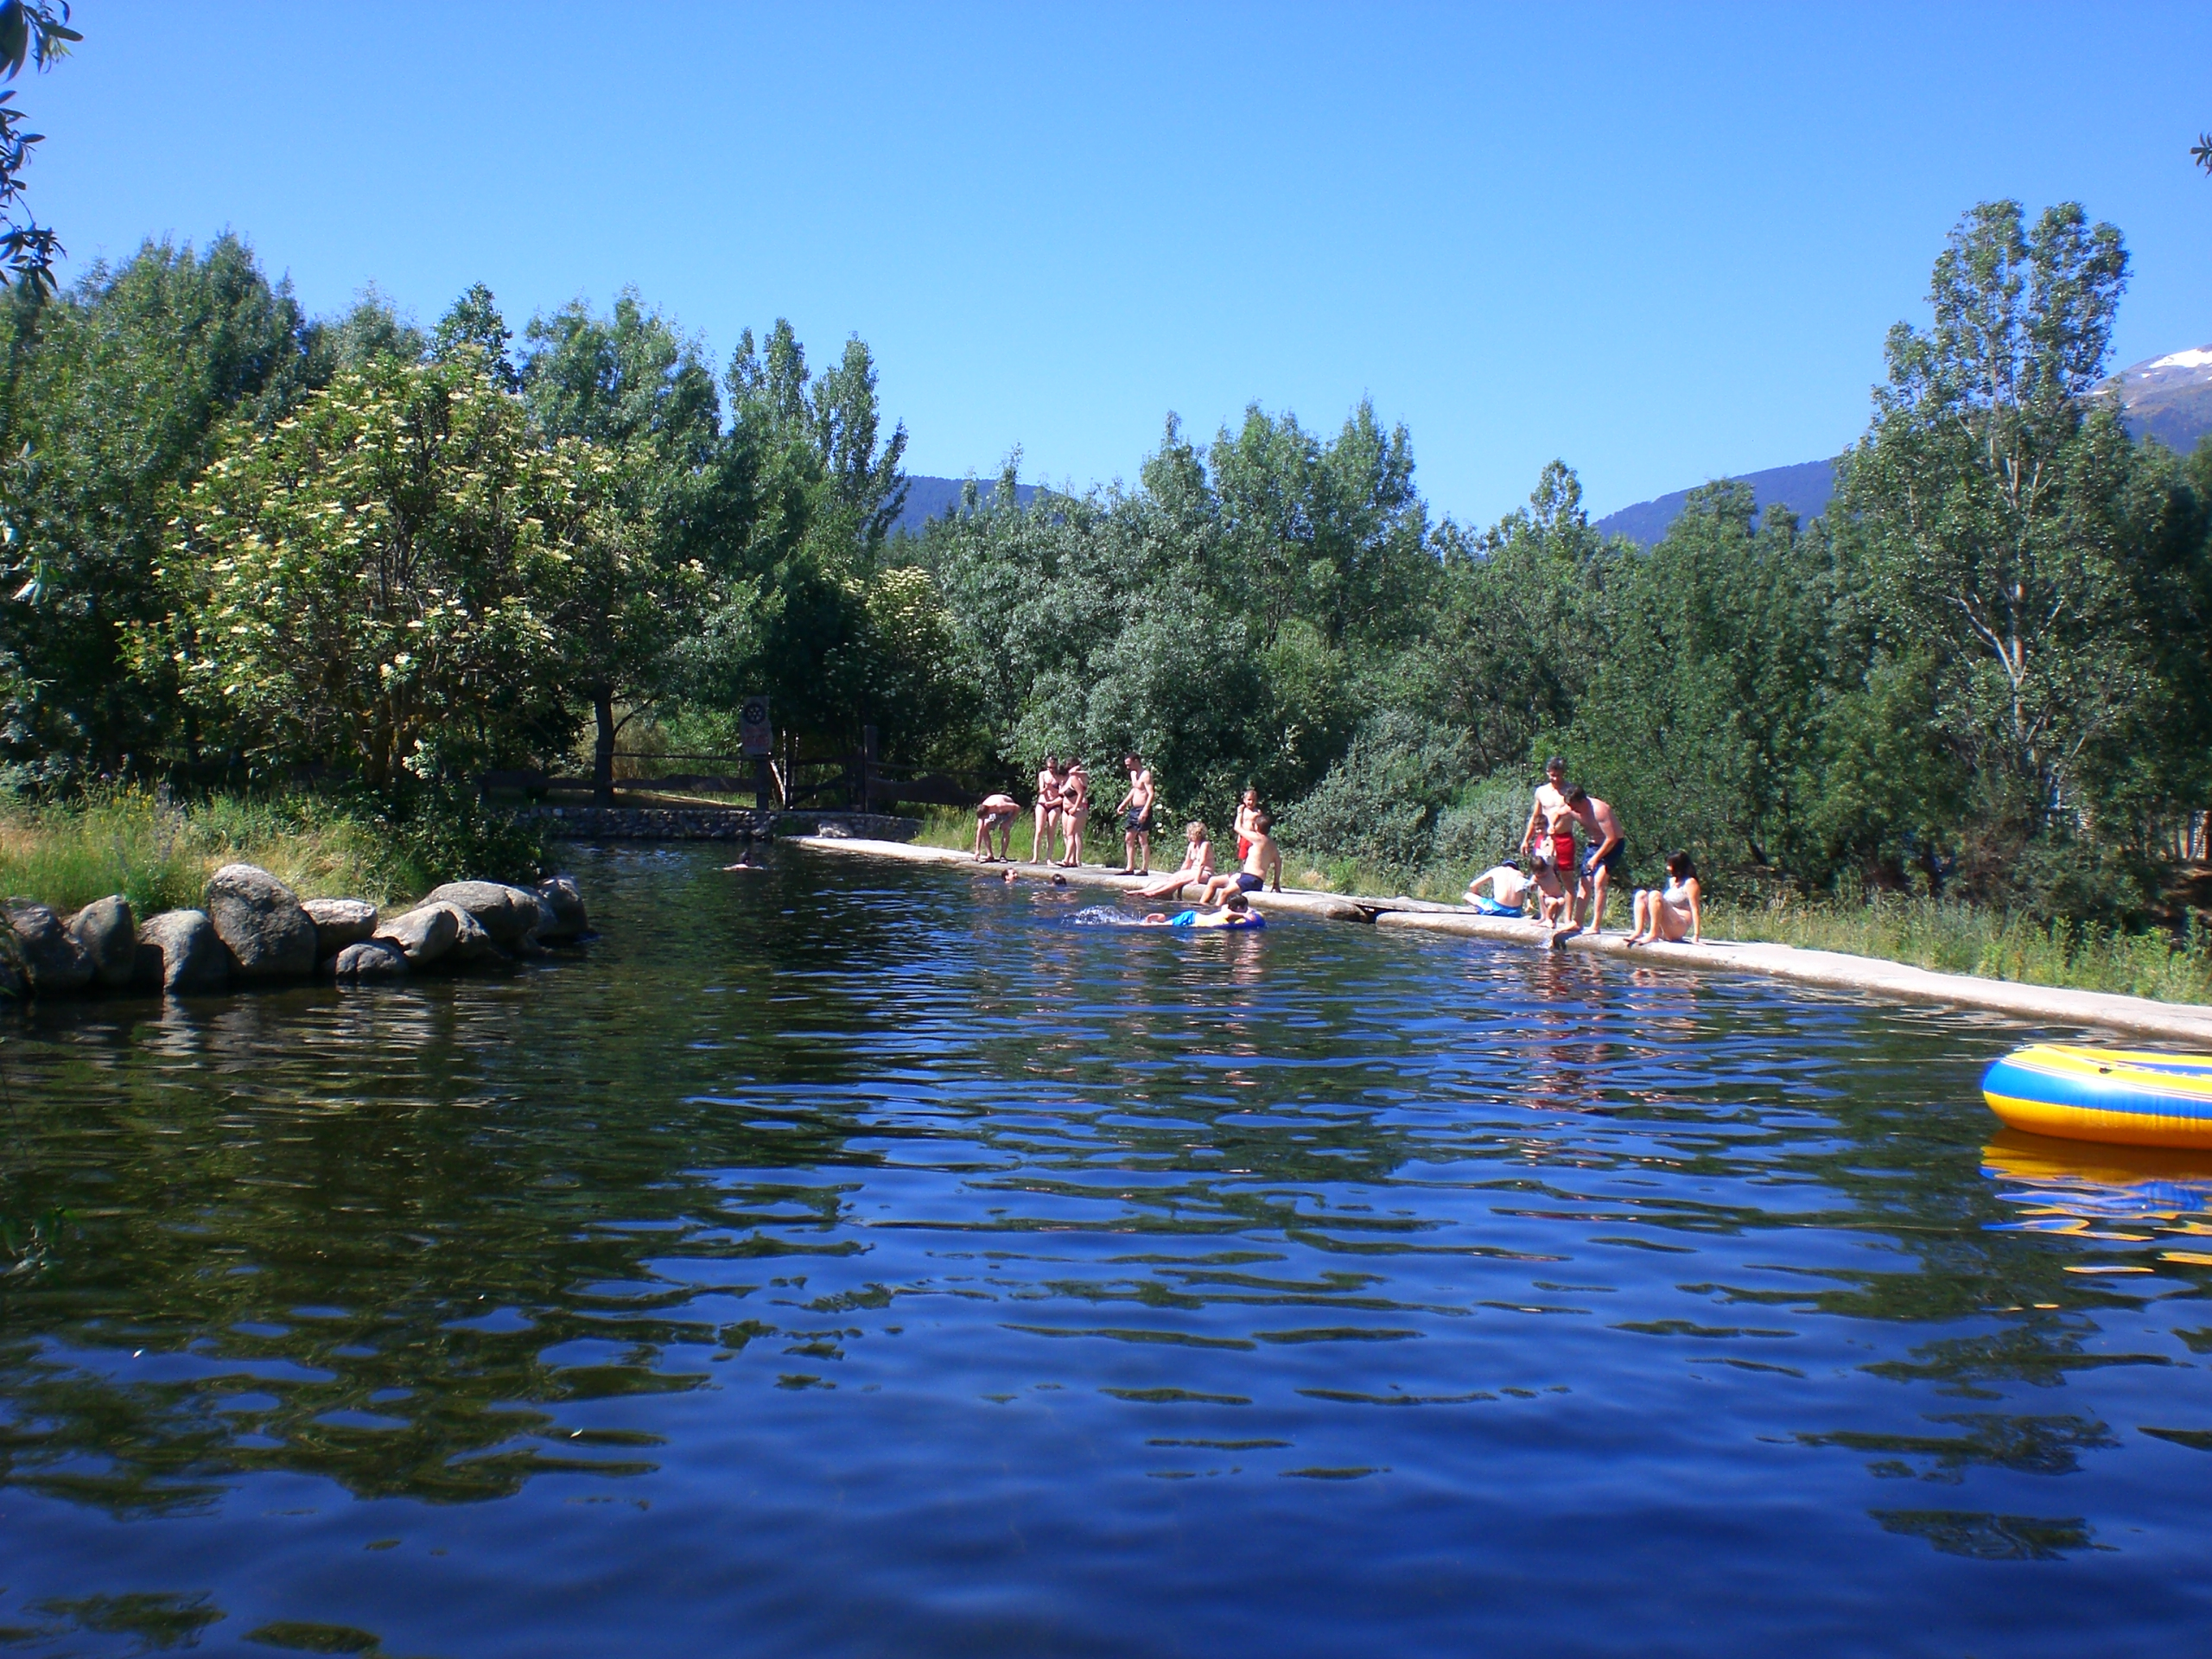 piscinas naturales en rascafr a madrid natural pools in